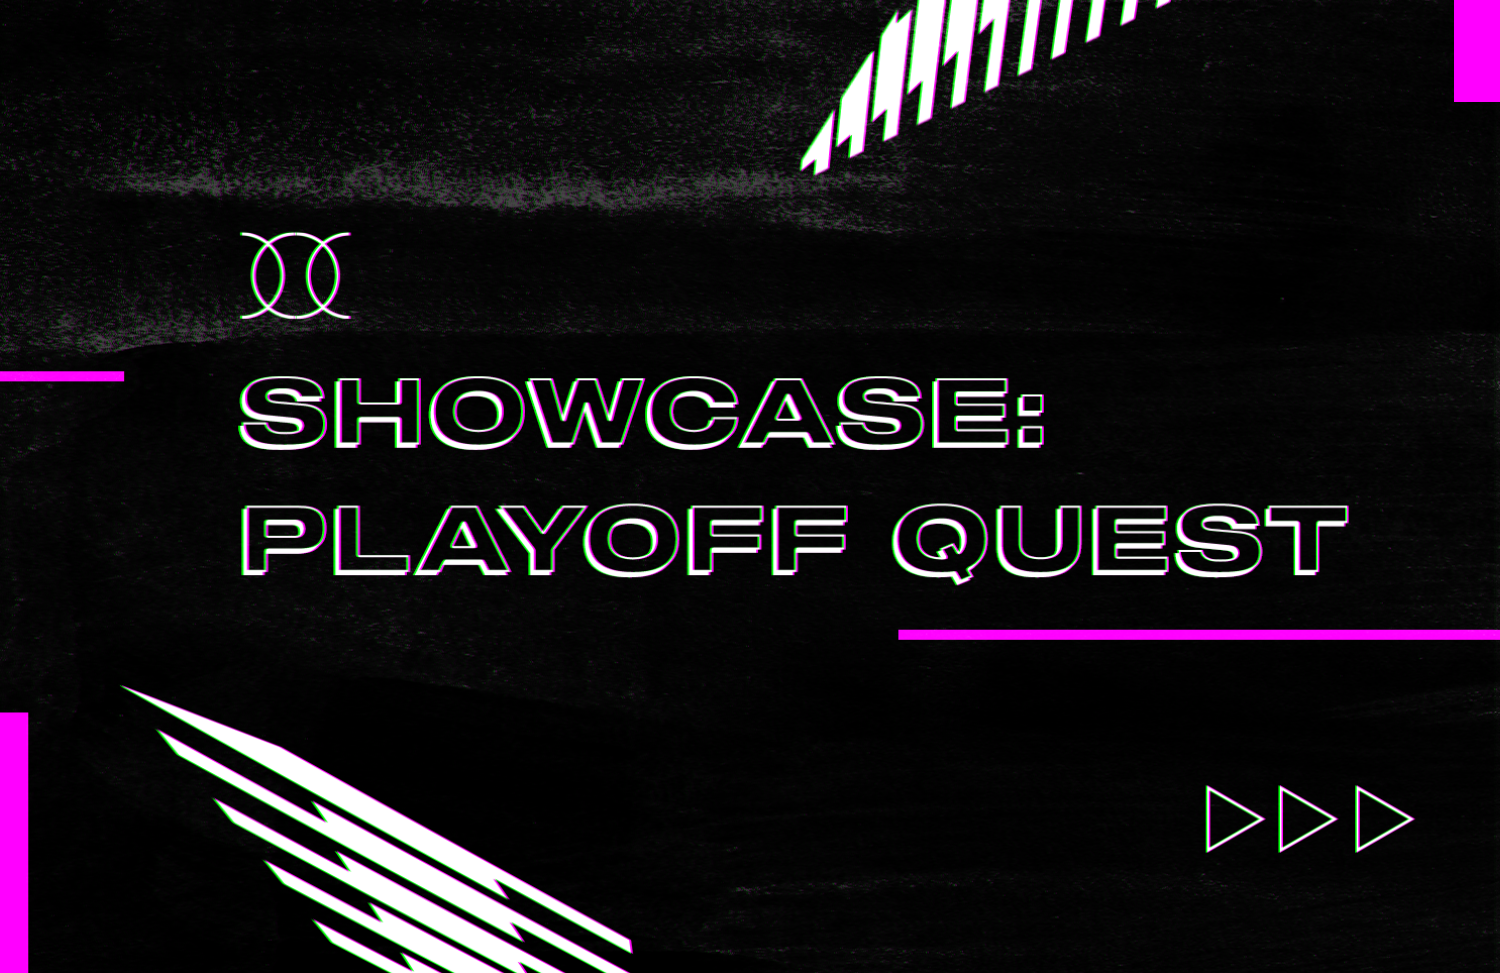 Showcase Playoff Quest is here!